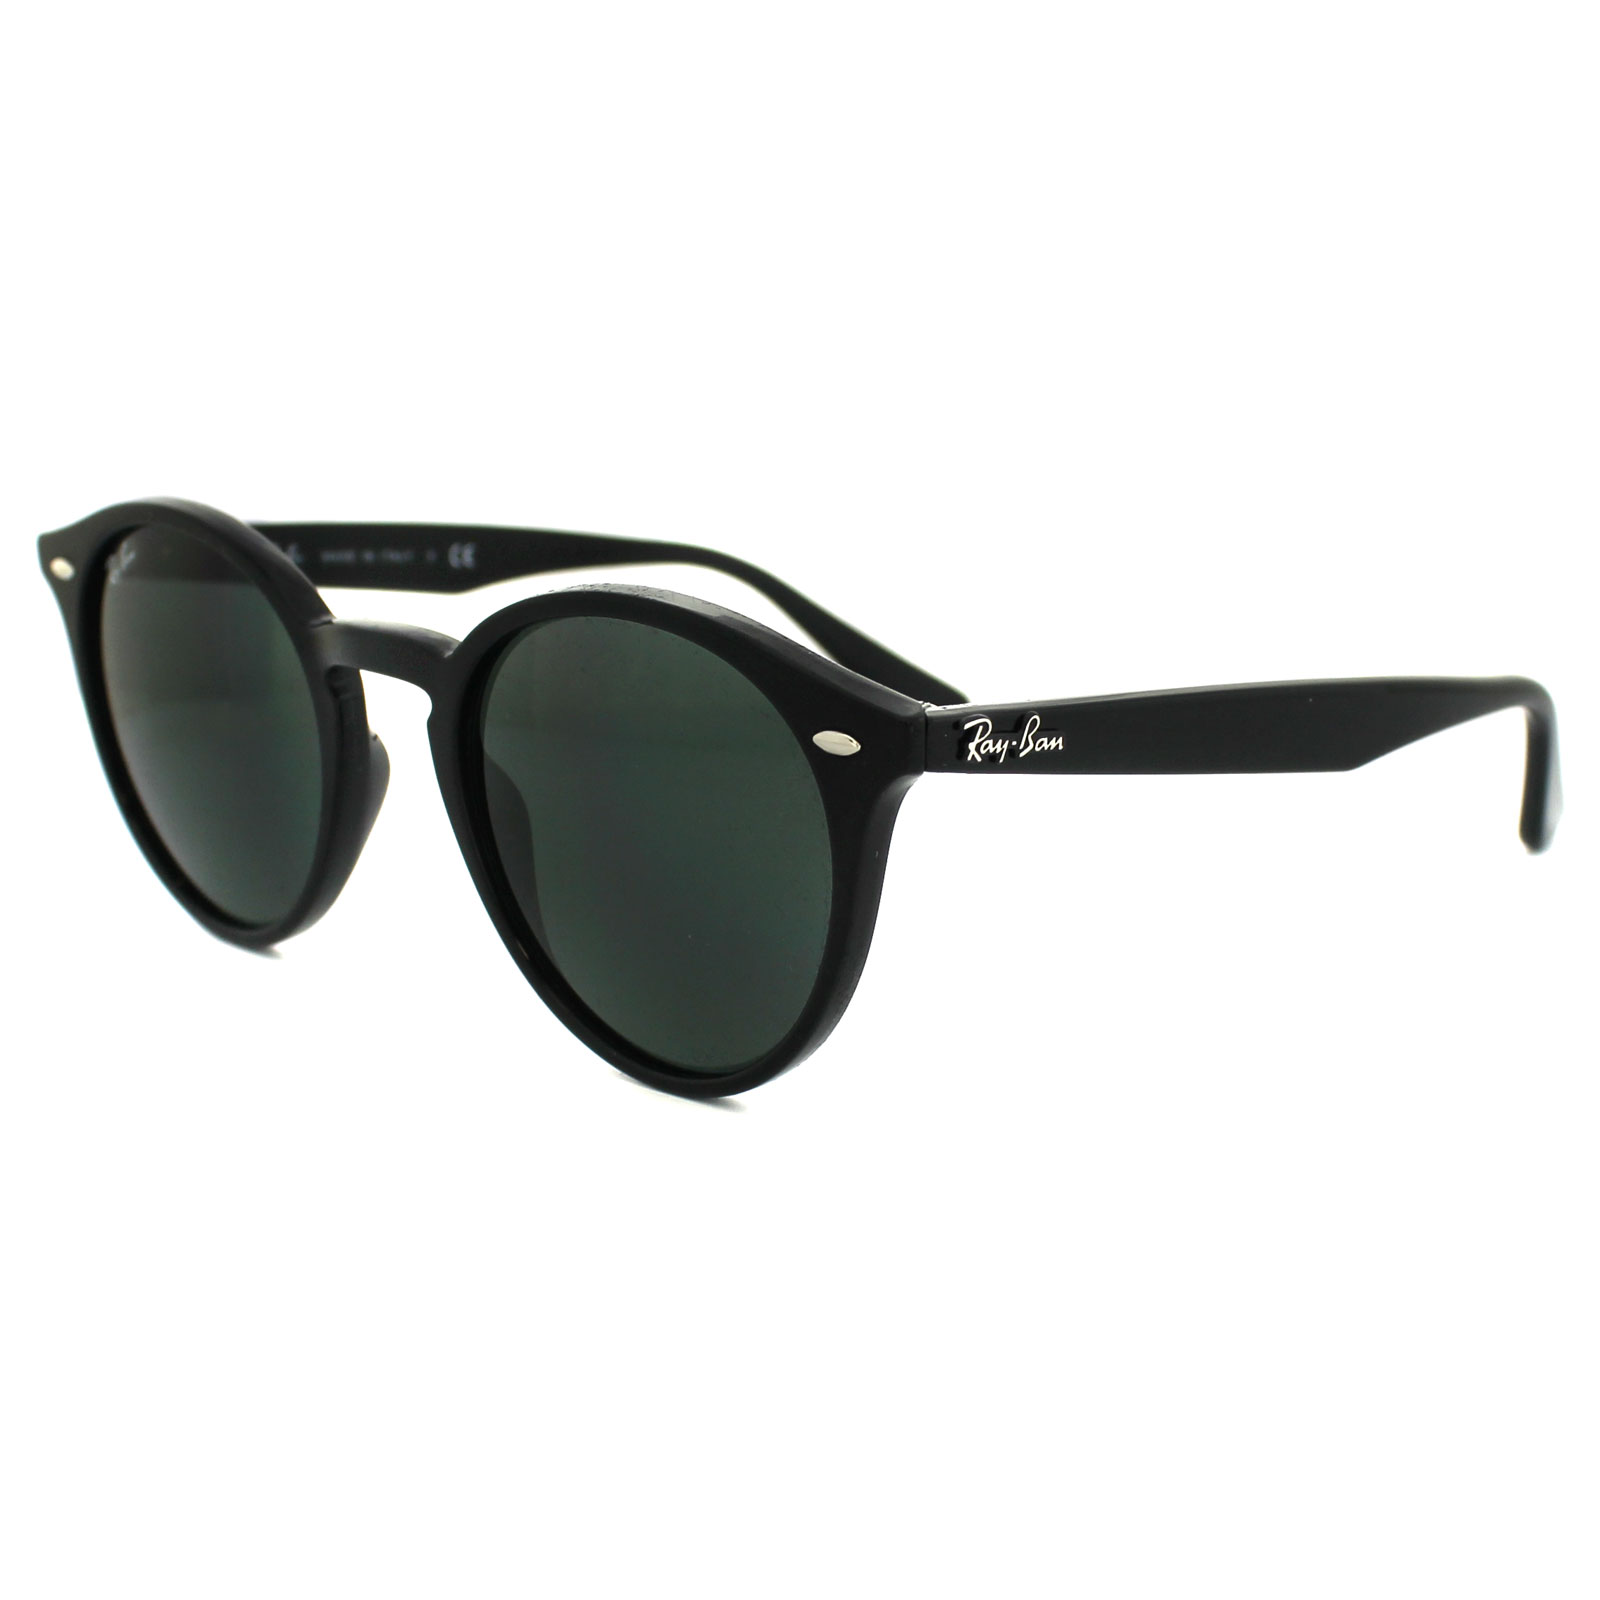 34def8b360 Ray-Ban Sunglasses 2180 601 71 Black Green 8053672358575